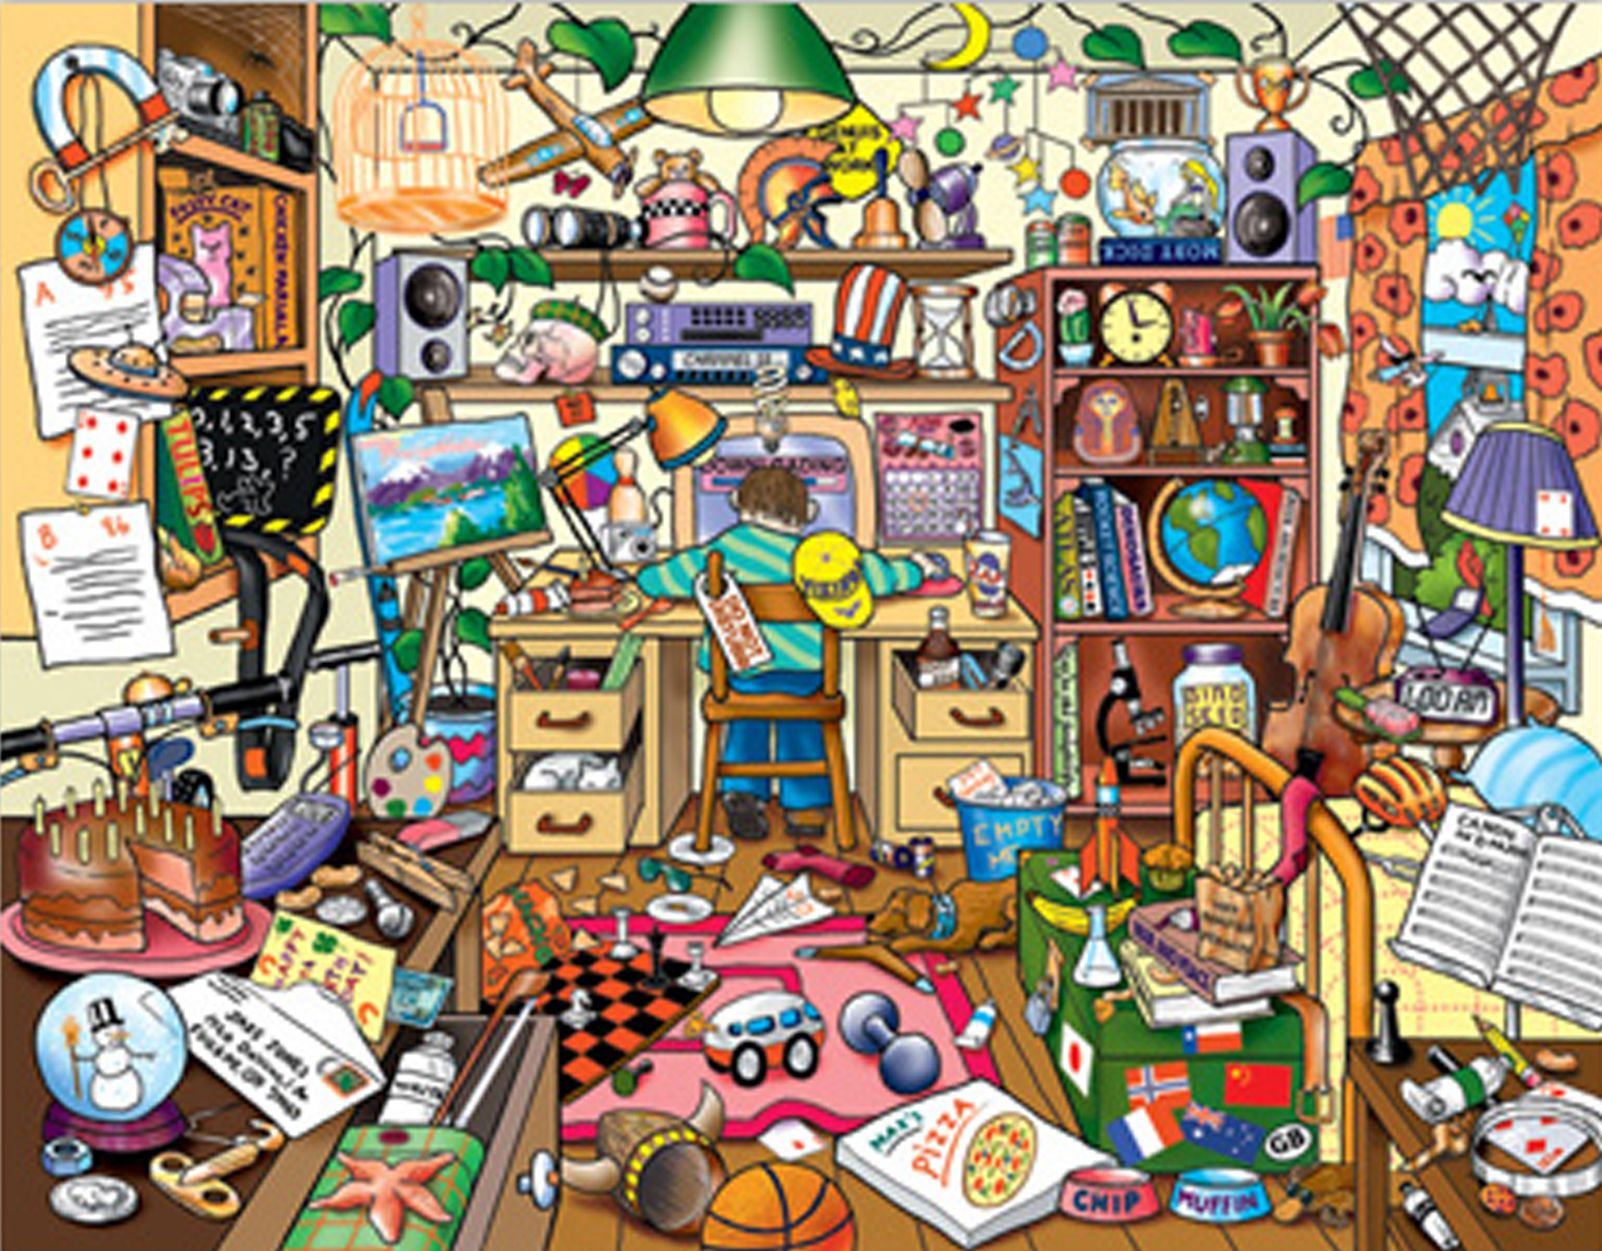 Messy Living Room Clipart